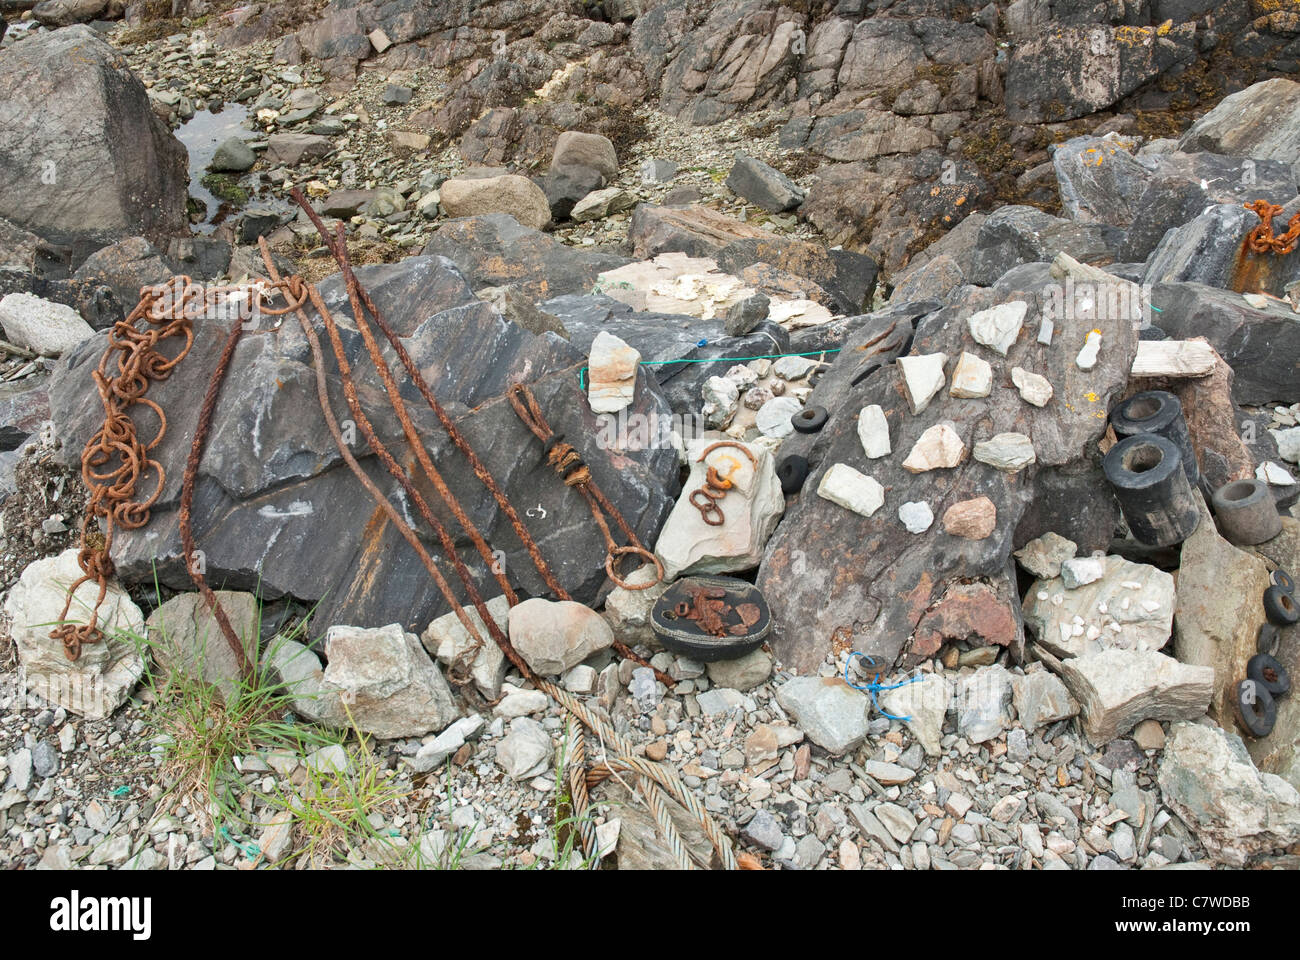 Beachcombing, small found items and stones arranged on rocks - Stock Image